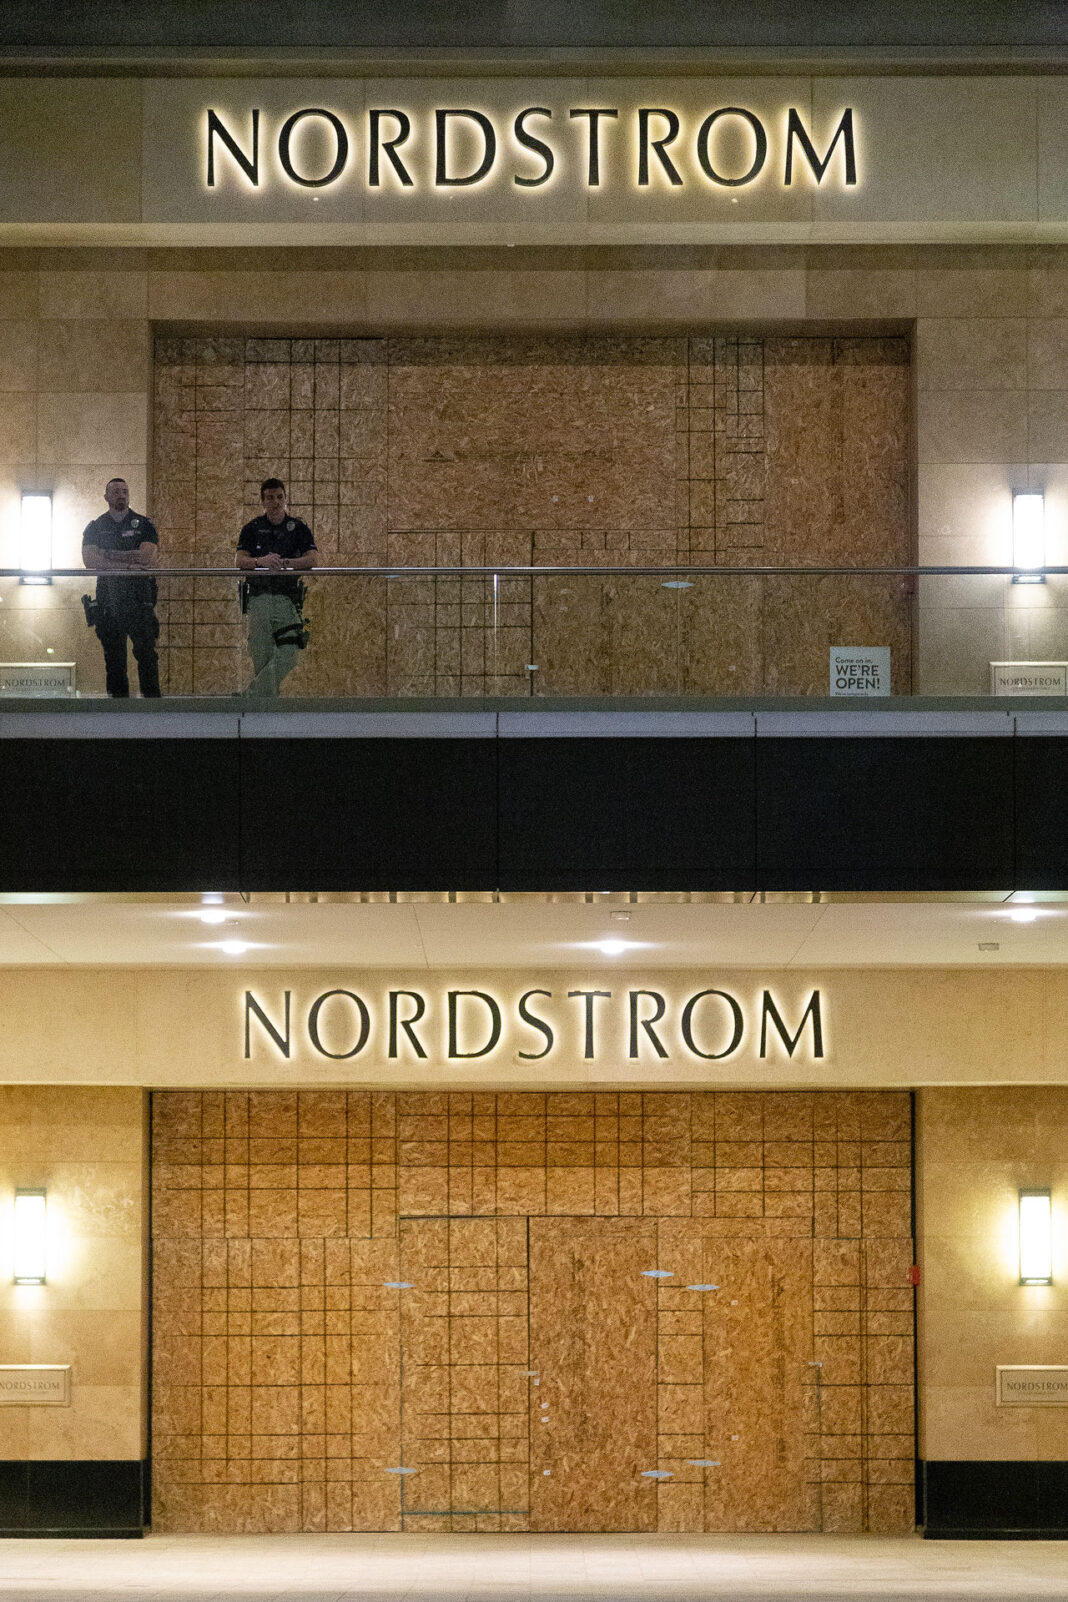 Nordstrom boarded up